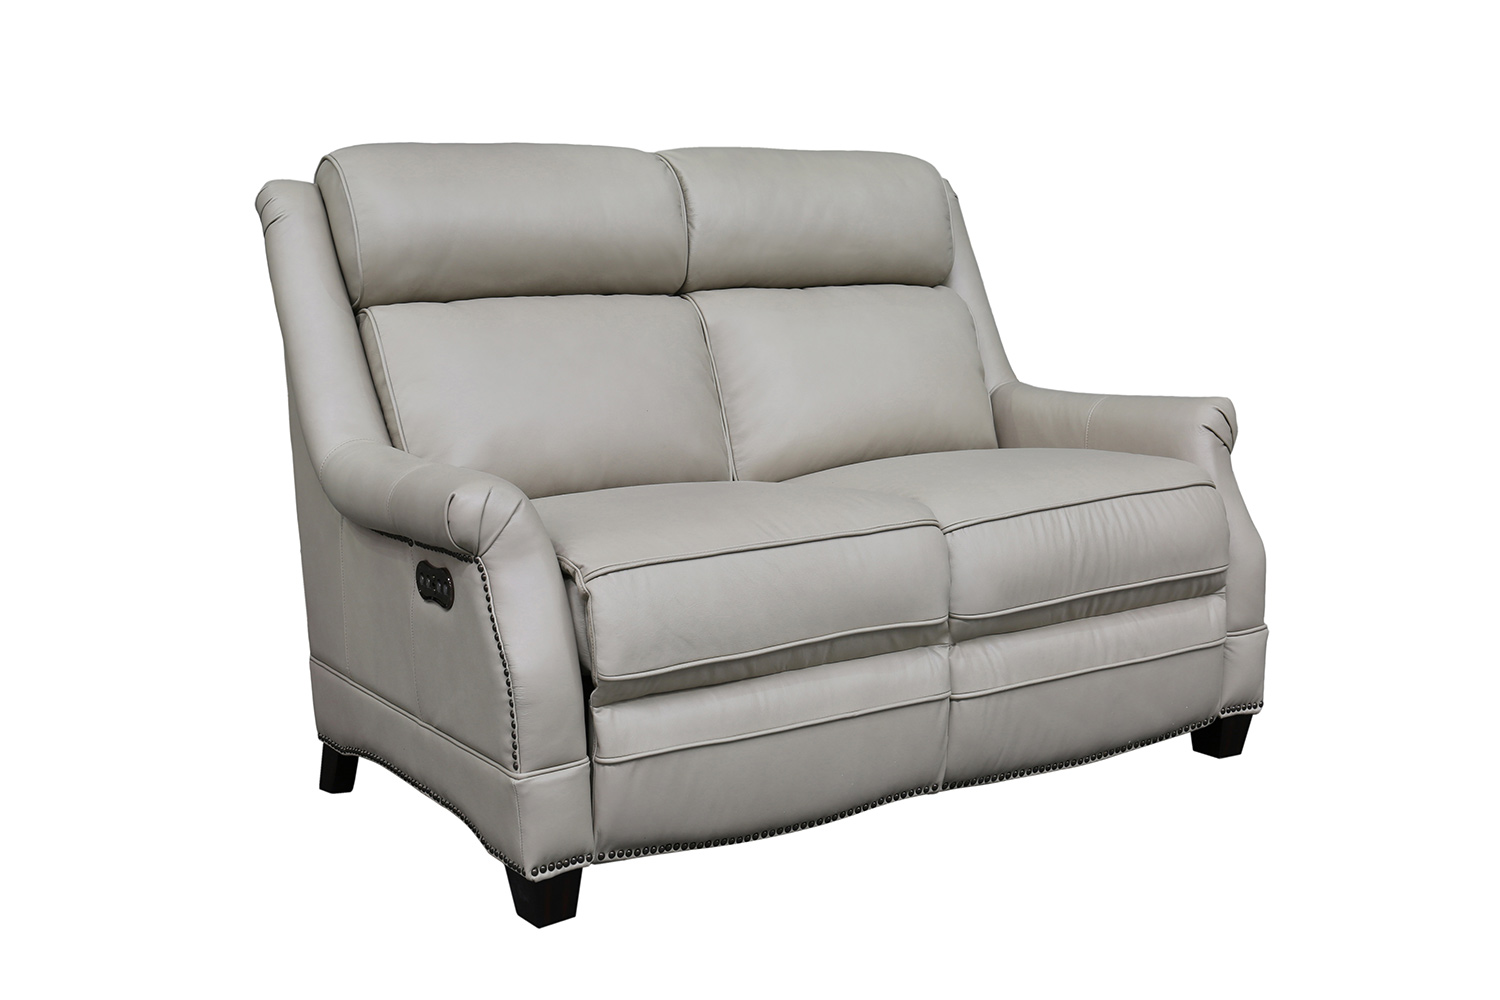 Barcalounger Warrendale Power Reclining Loveseat with Power Head Rests - Shoreham Cream/All Leather